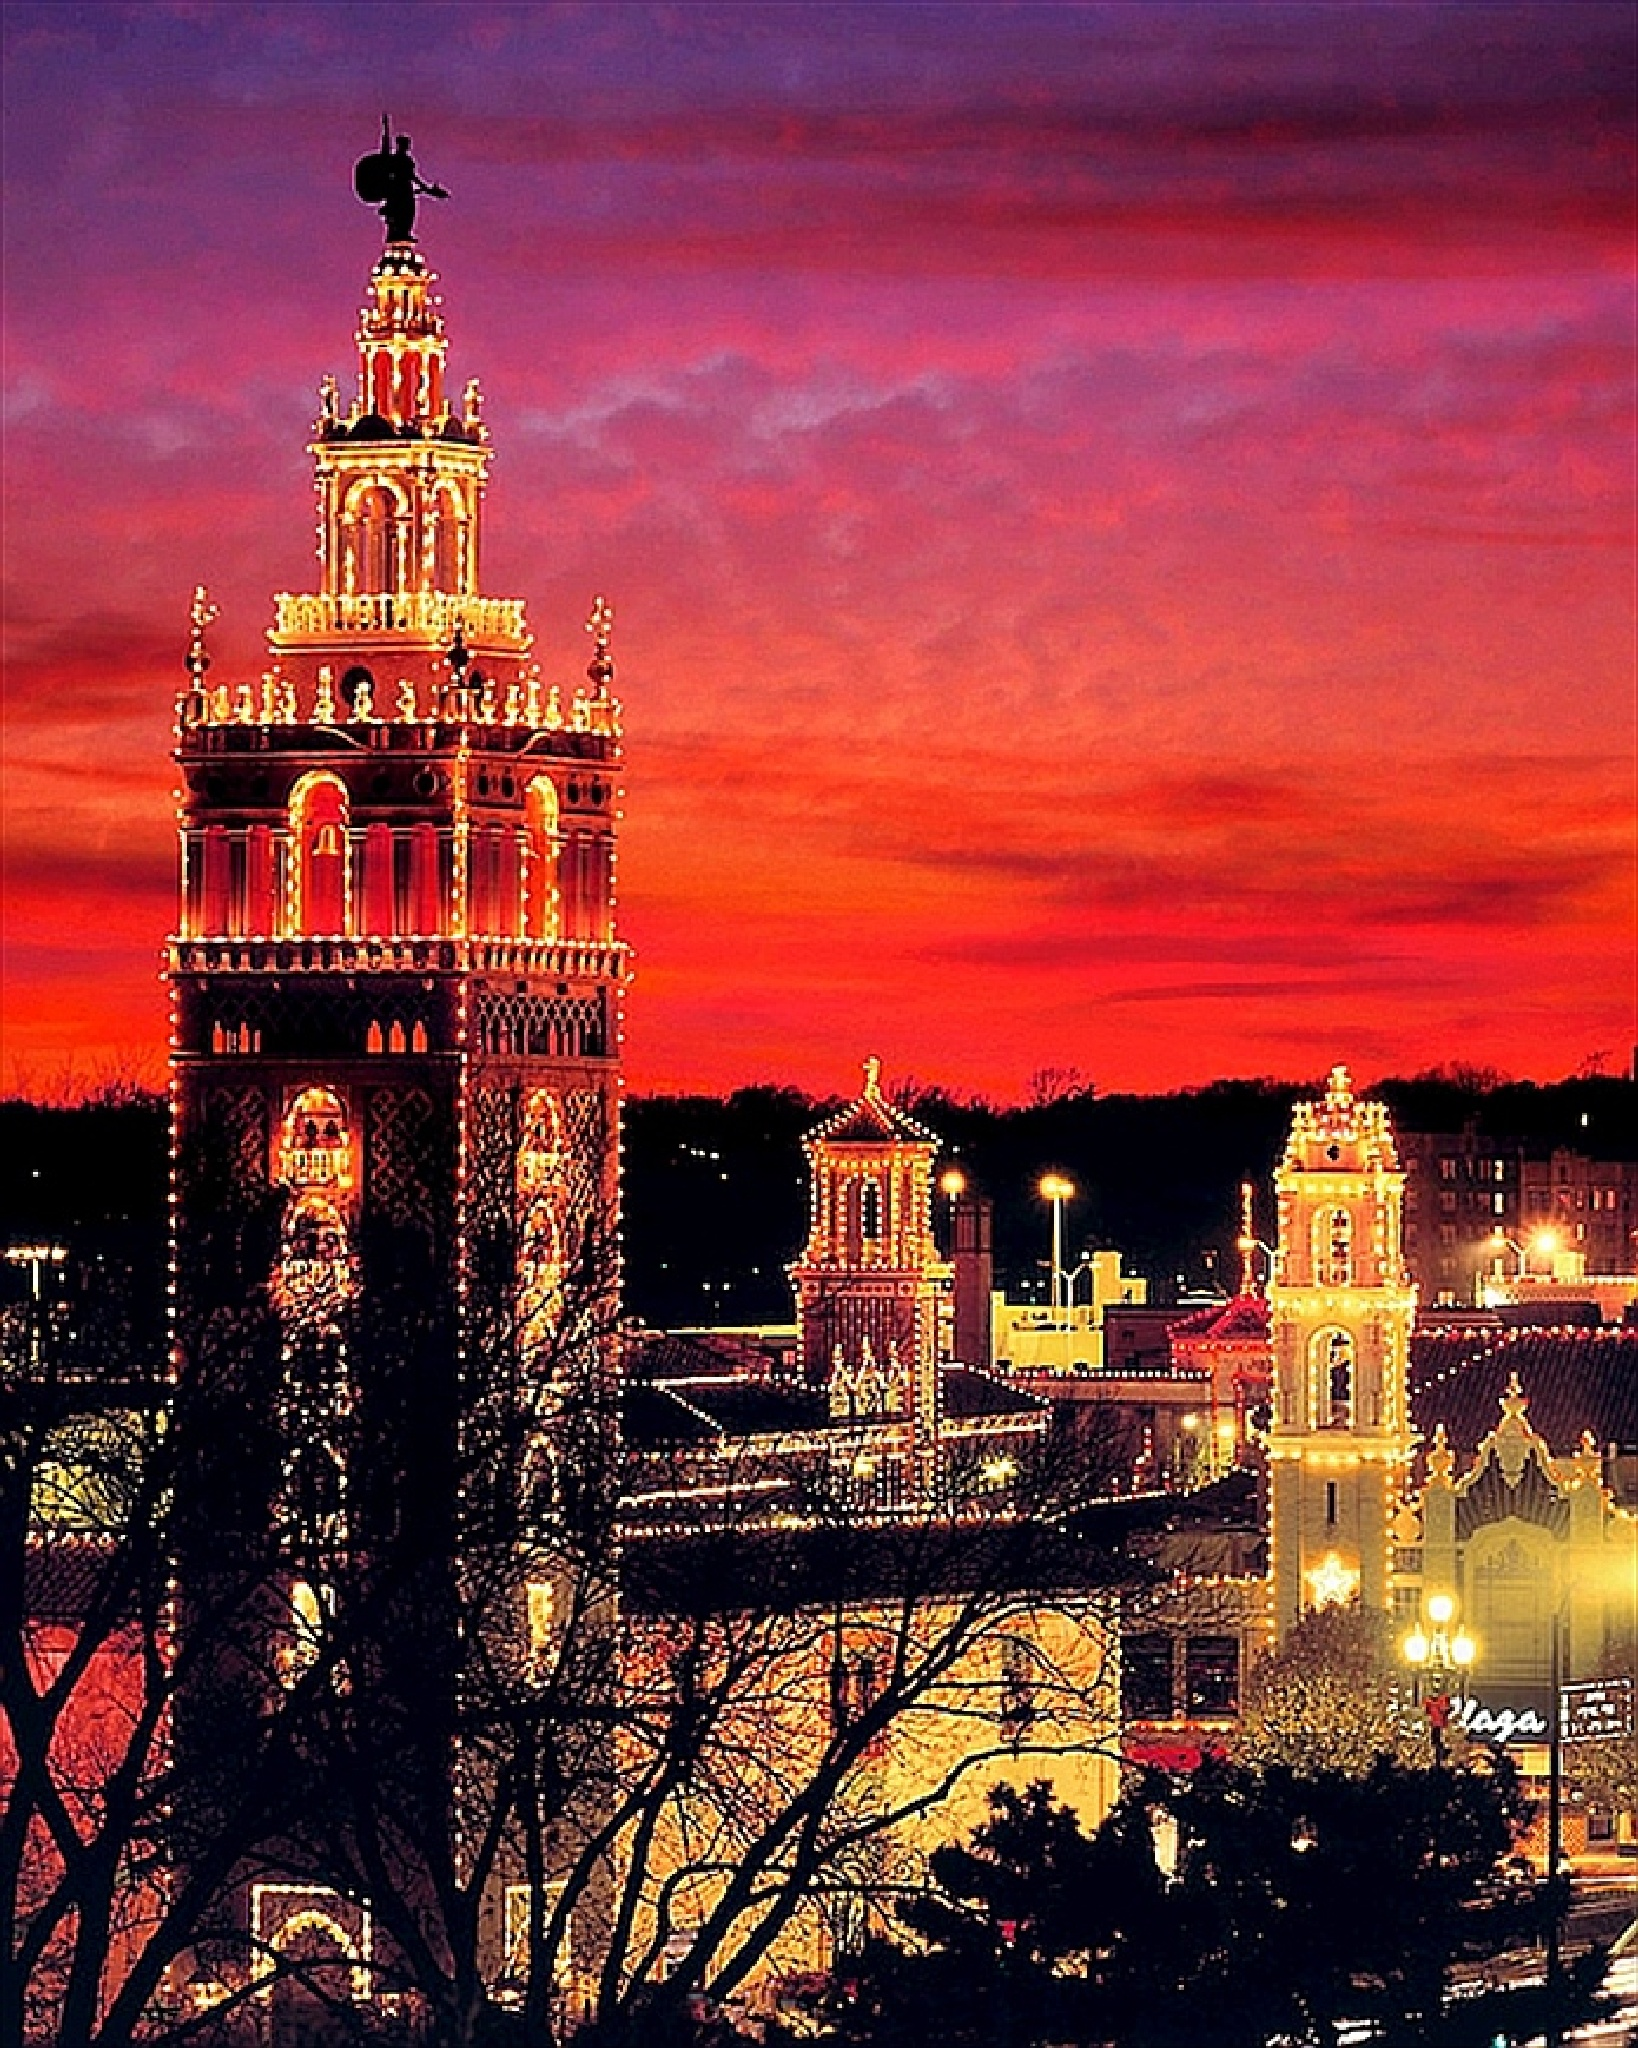 The Giralda Tower decked out for Christmas / Country Club Plaza by Lorenzo (Larry) Jonree